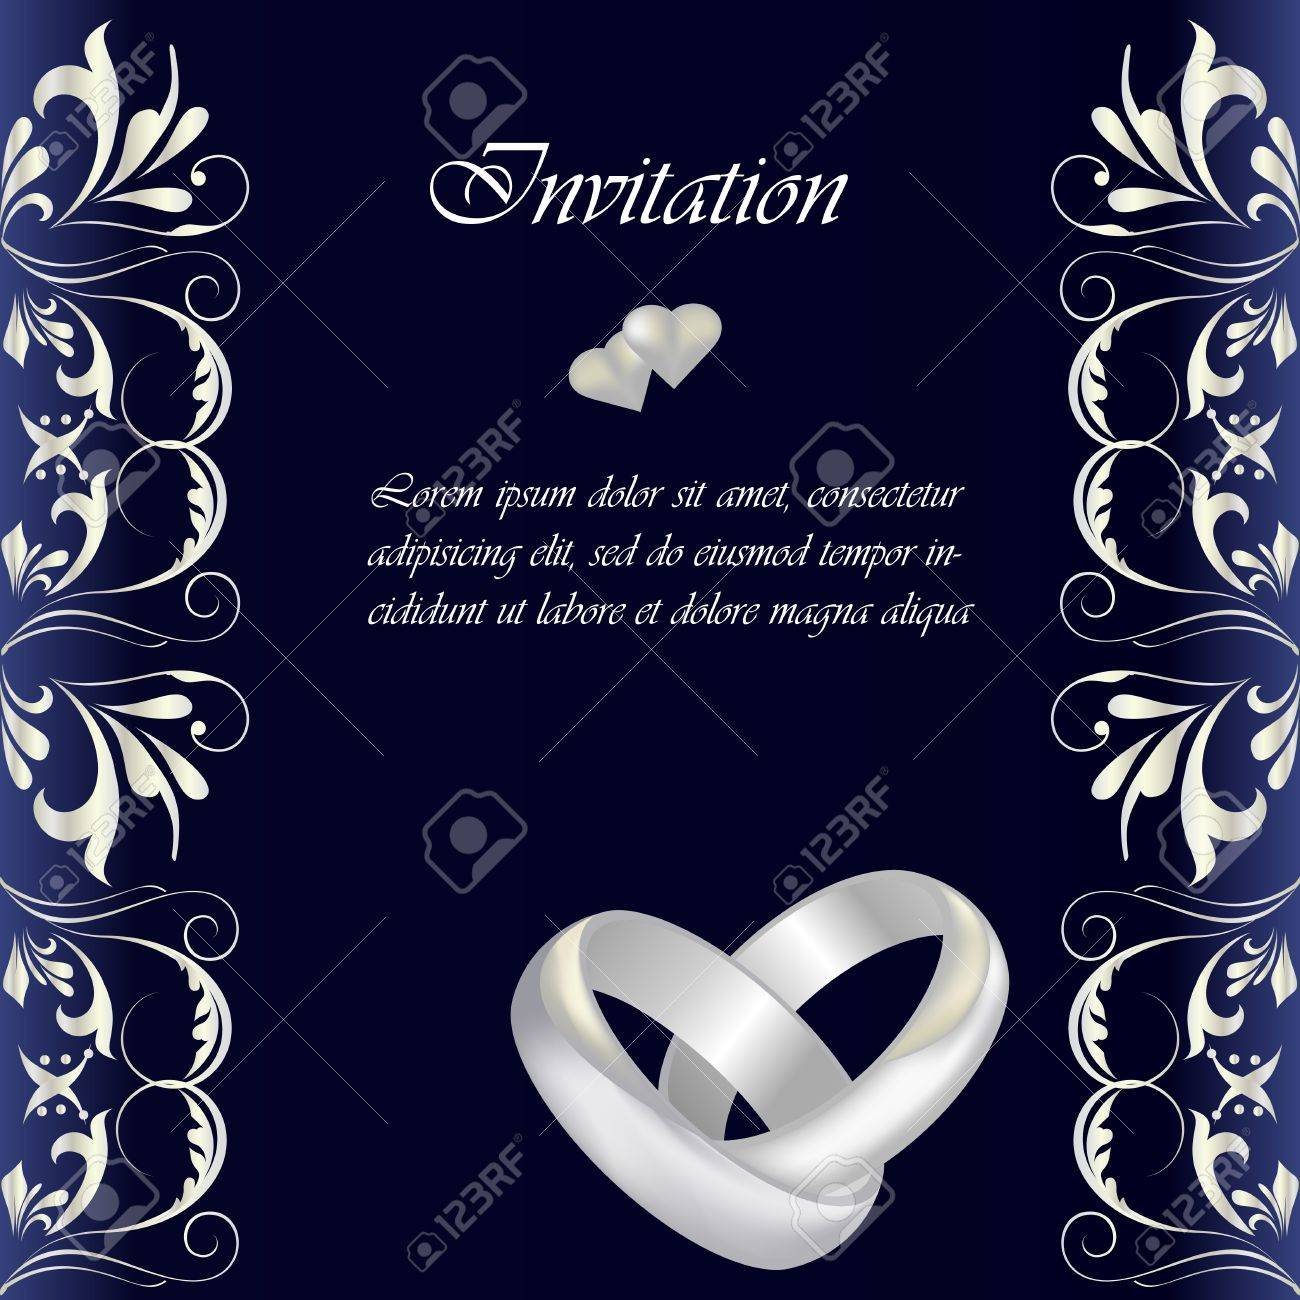 Wedding Invitation Width 3D Rings And Flowers Royalty Free Cliparts ...